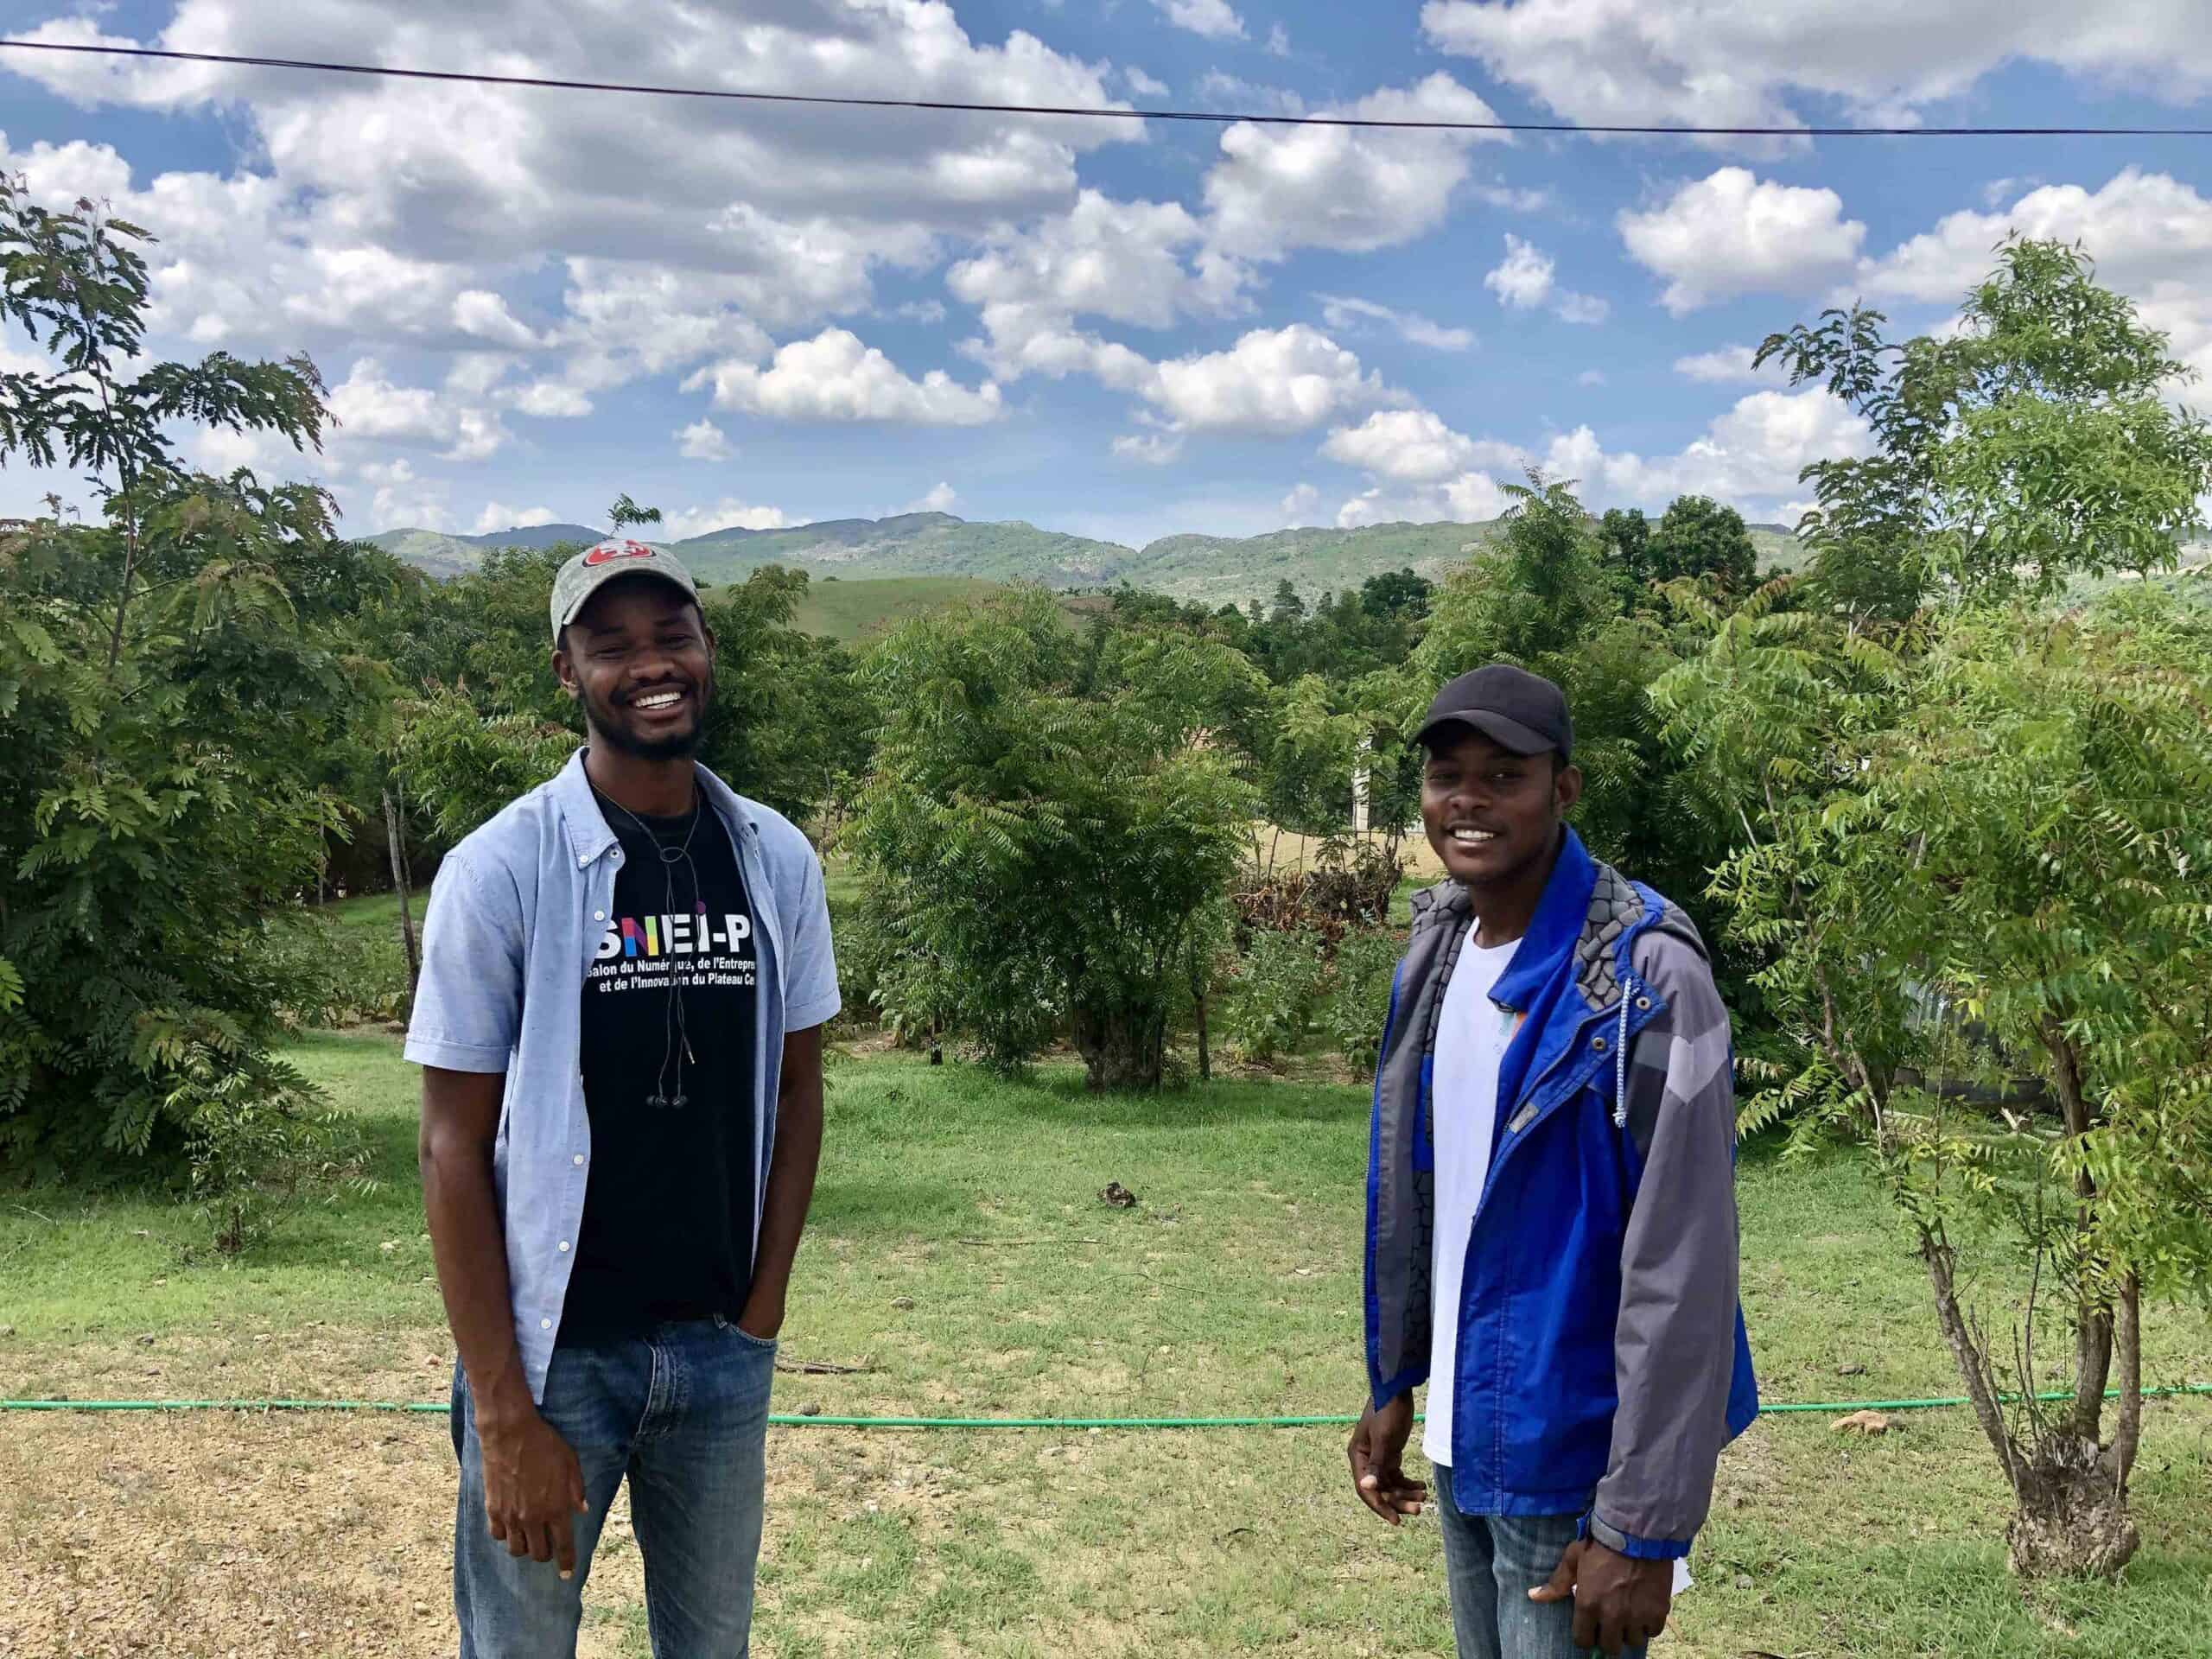 Two former students create impact by giving back while working in agriculture at a farm associated with our school